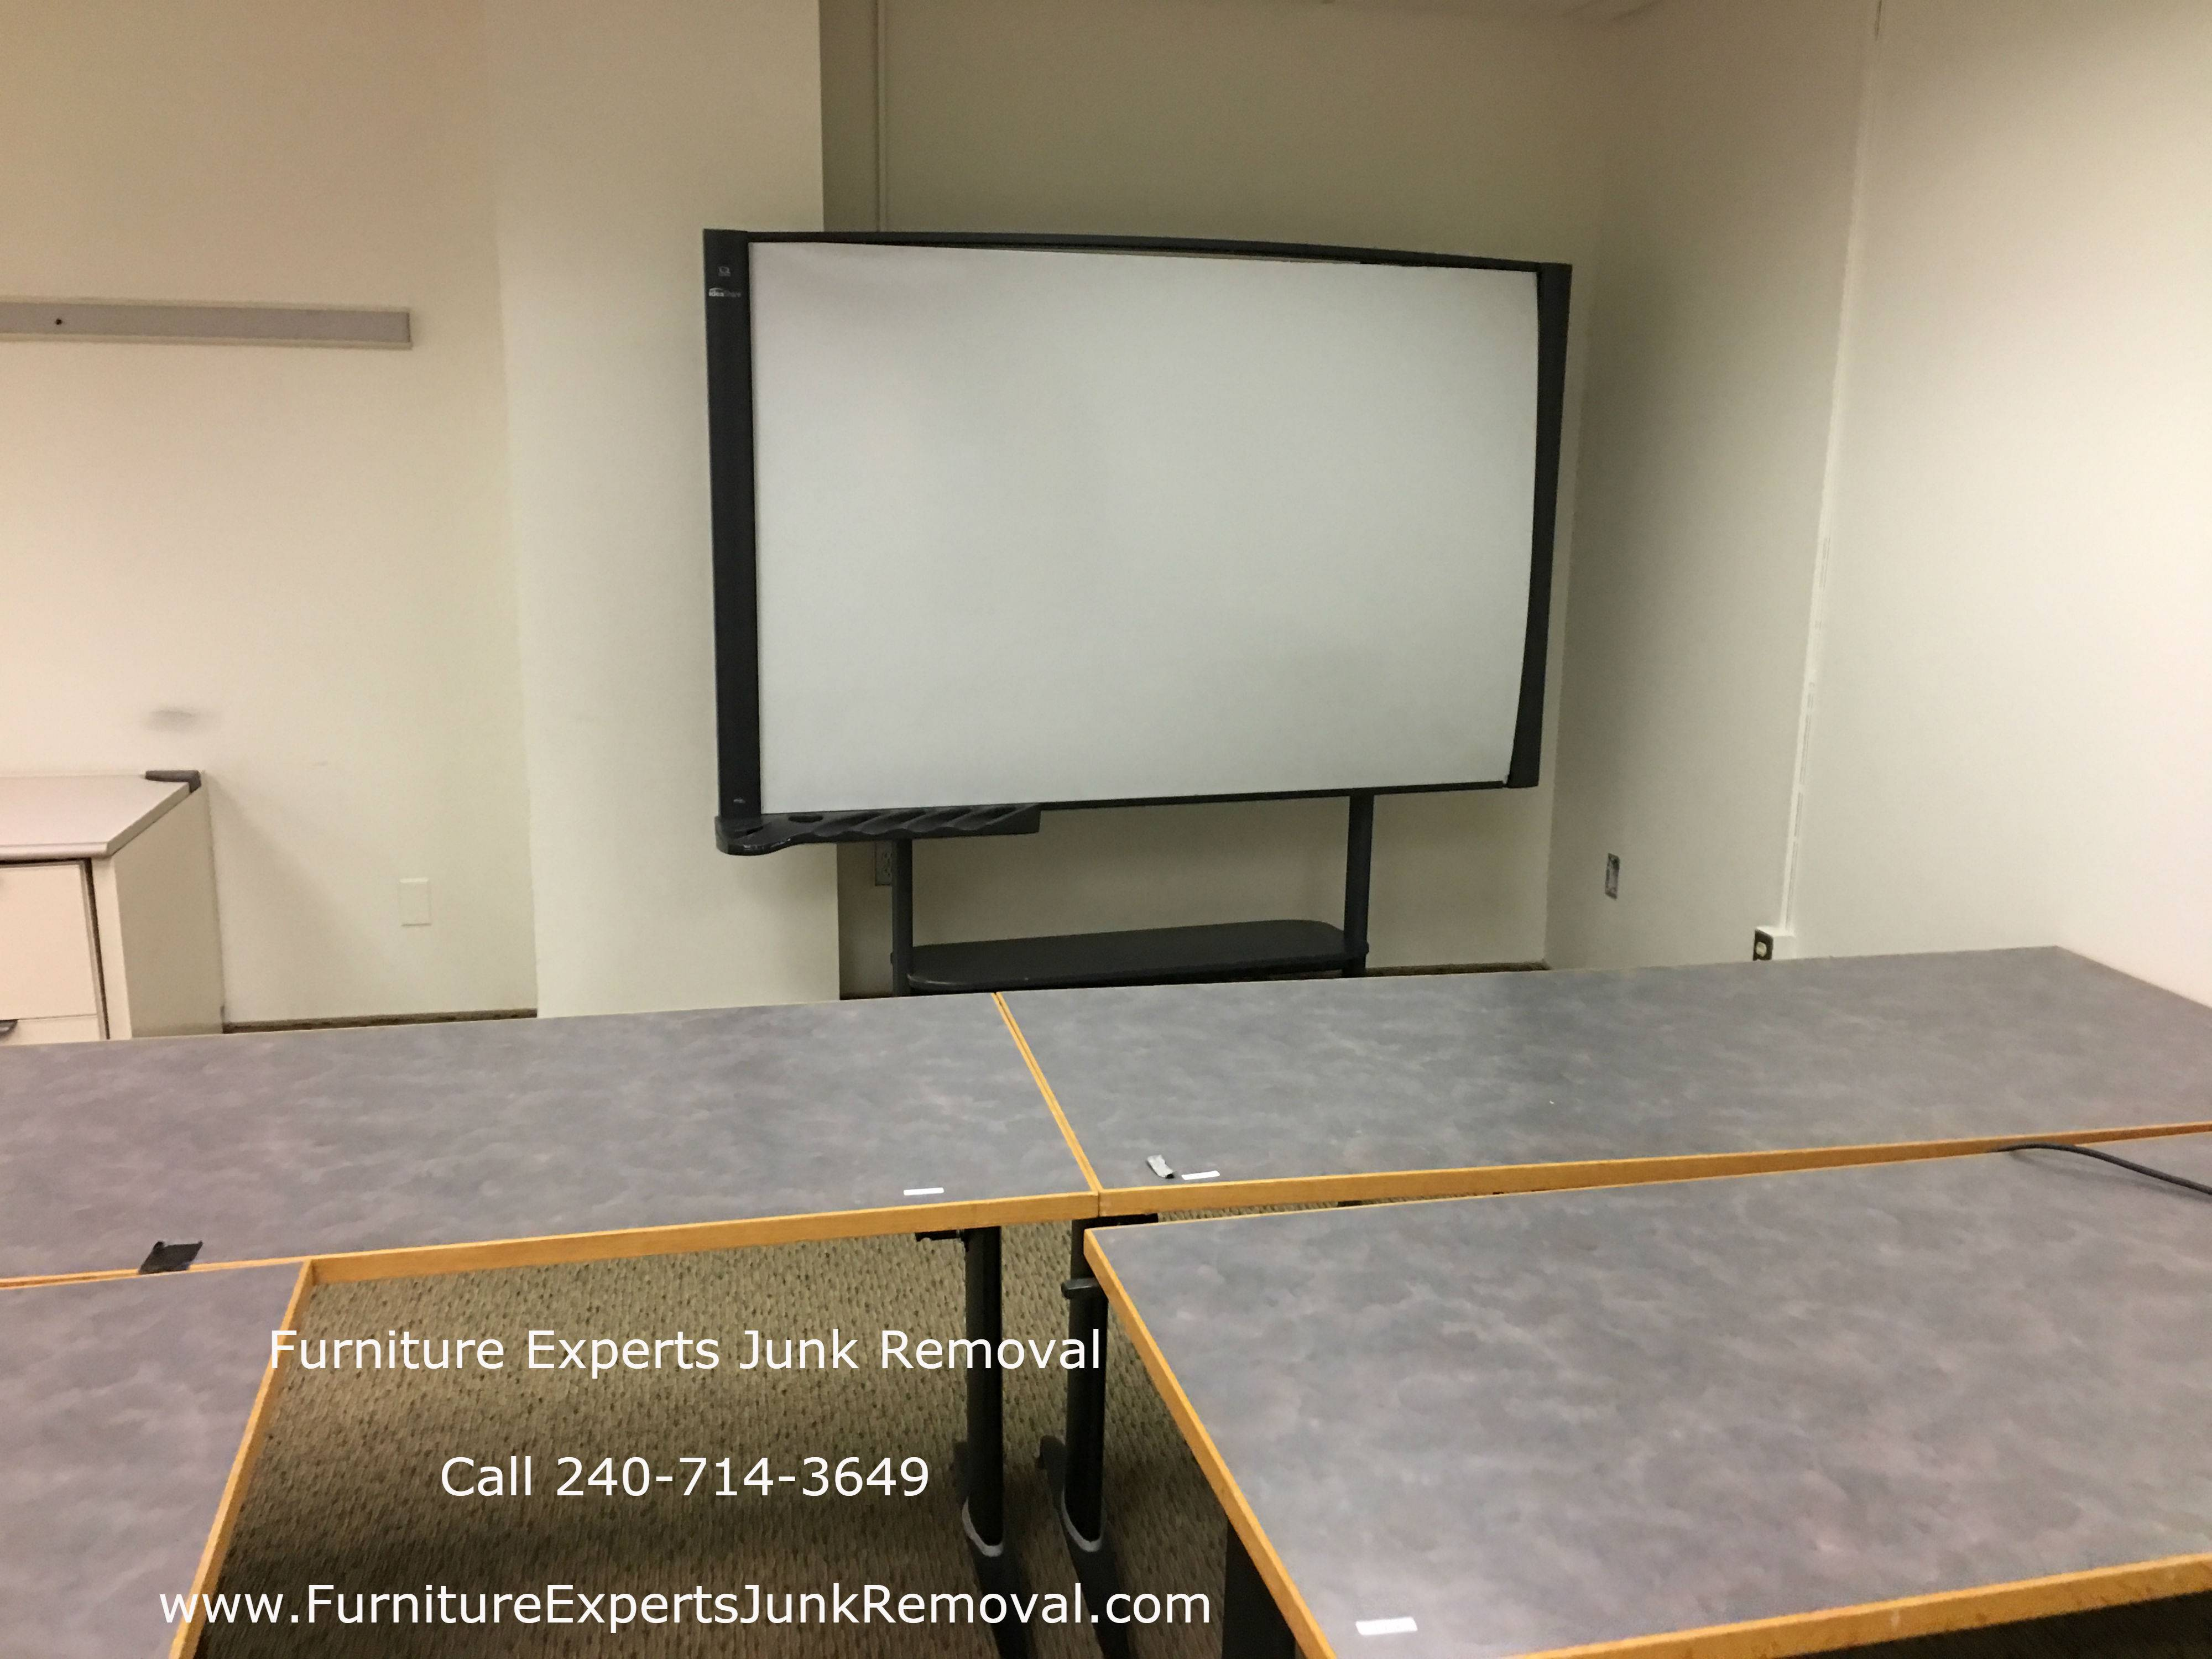 Junk office furniture removal in rockville MD